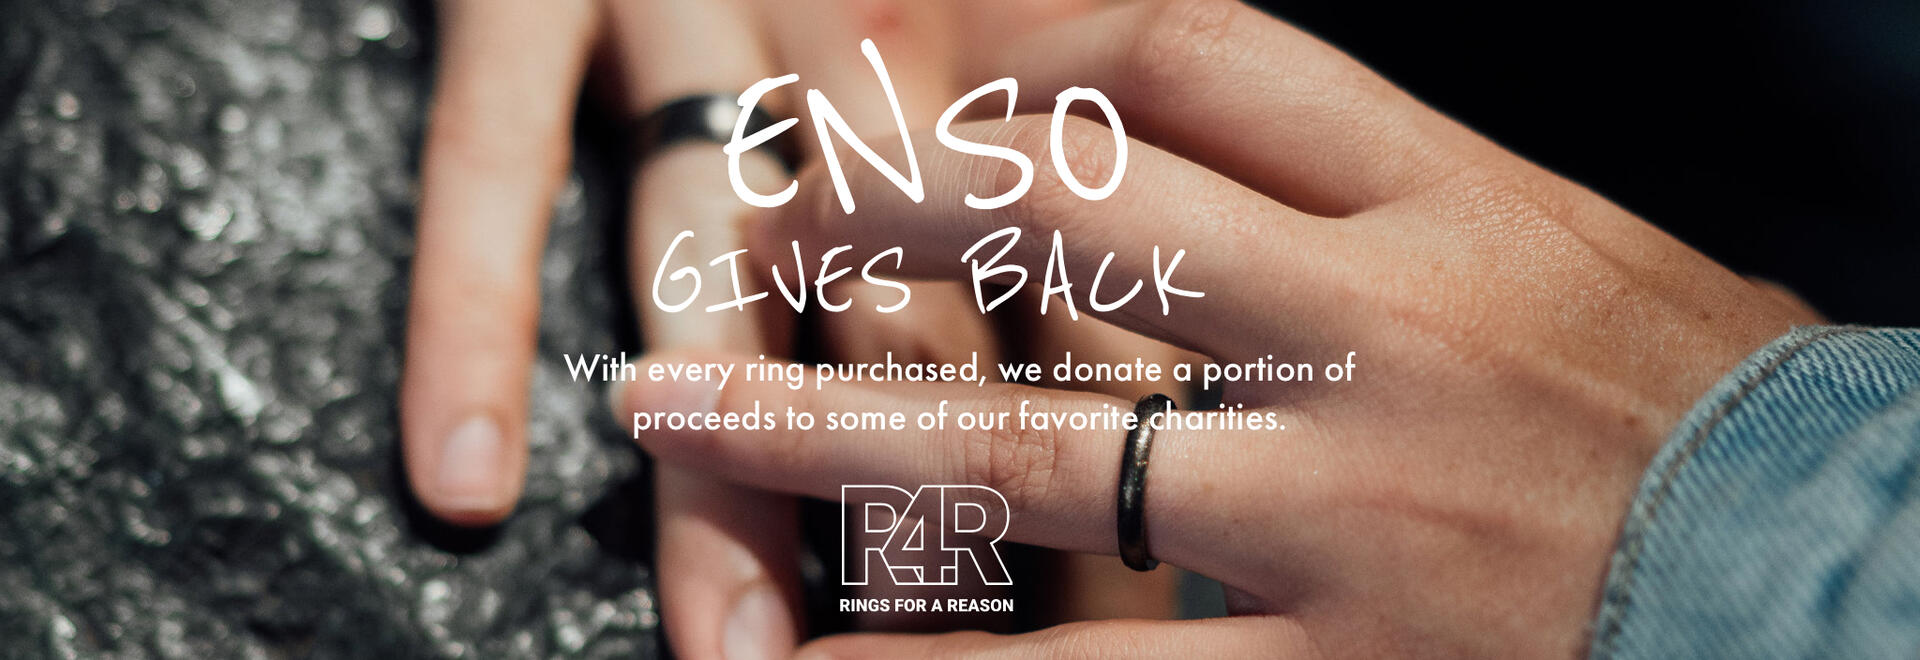 Elements Rings | Meteorite | Enso Rings Gives Gack - Rings for a Reason